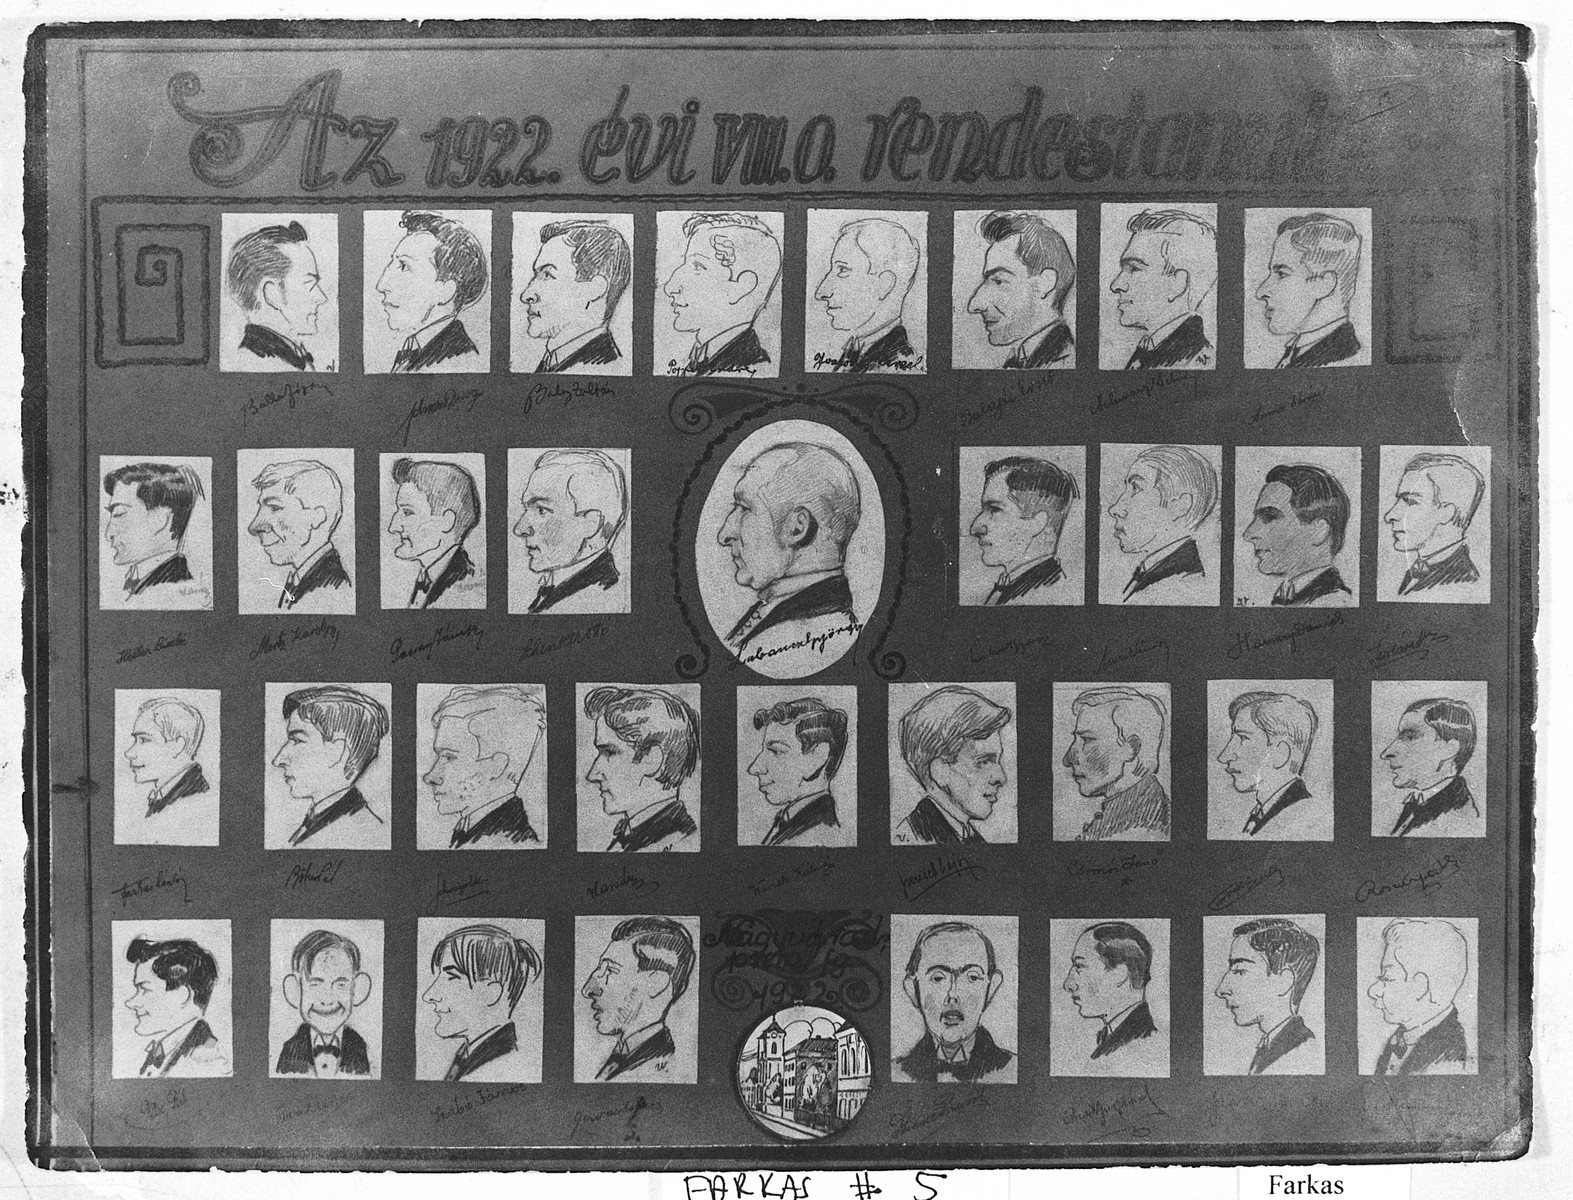 Caricature of the graduating class of the Oradea Gymnasium drawn by a student, Kalman Wavrek.  The school was directed by the Premonstratensian Order founded in France, but many of the students were Jewish.